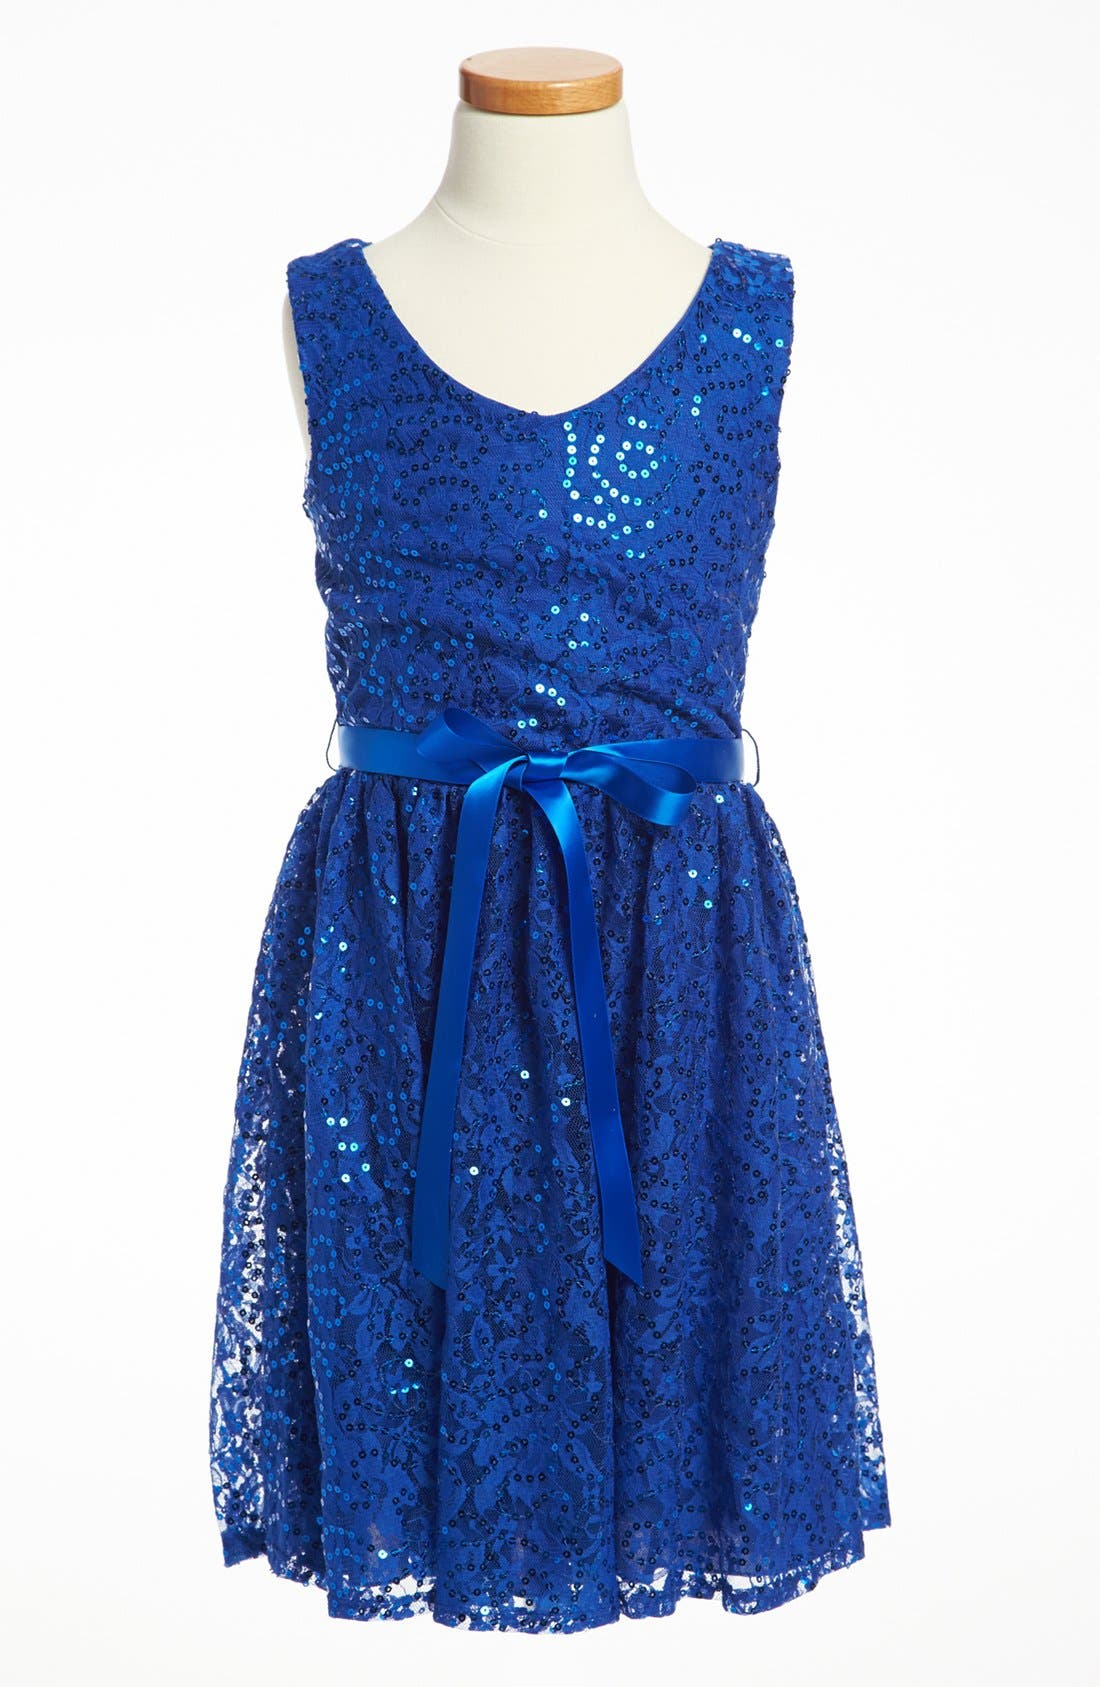 Alternate Image 1 Selected - Un Deux Trois Sequin Party Dress (Big Girls)